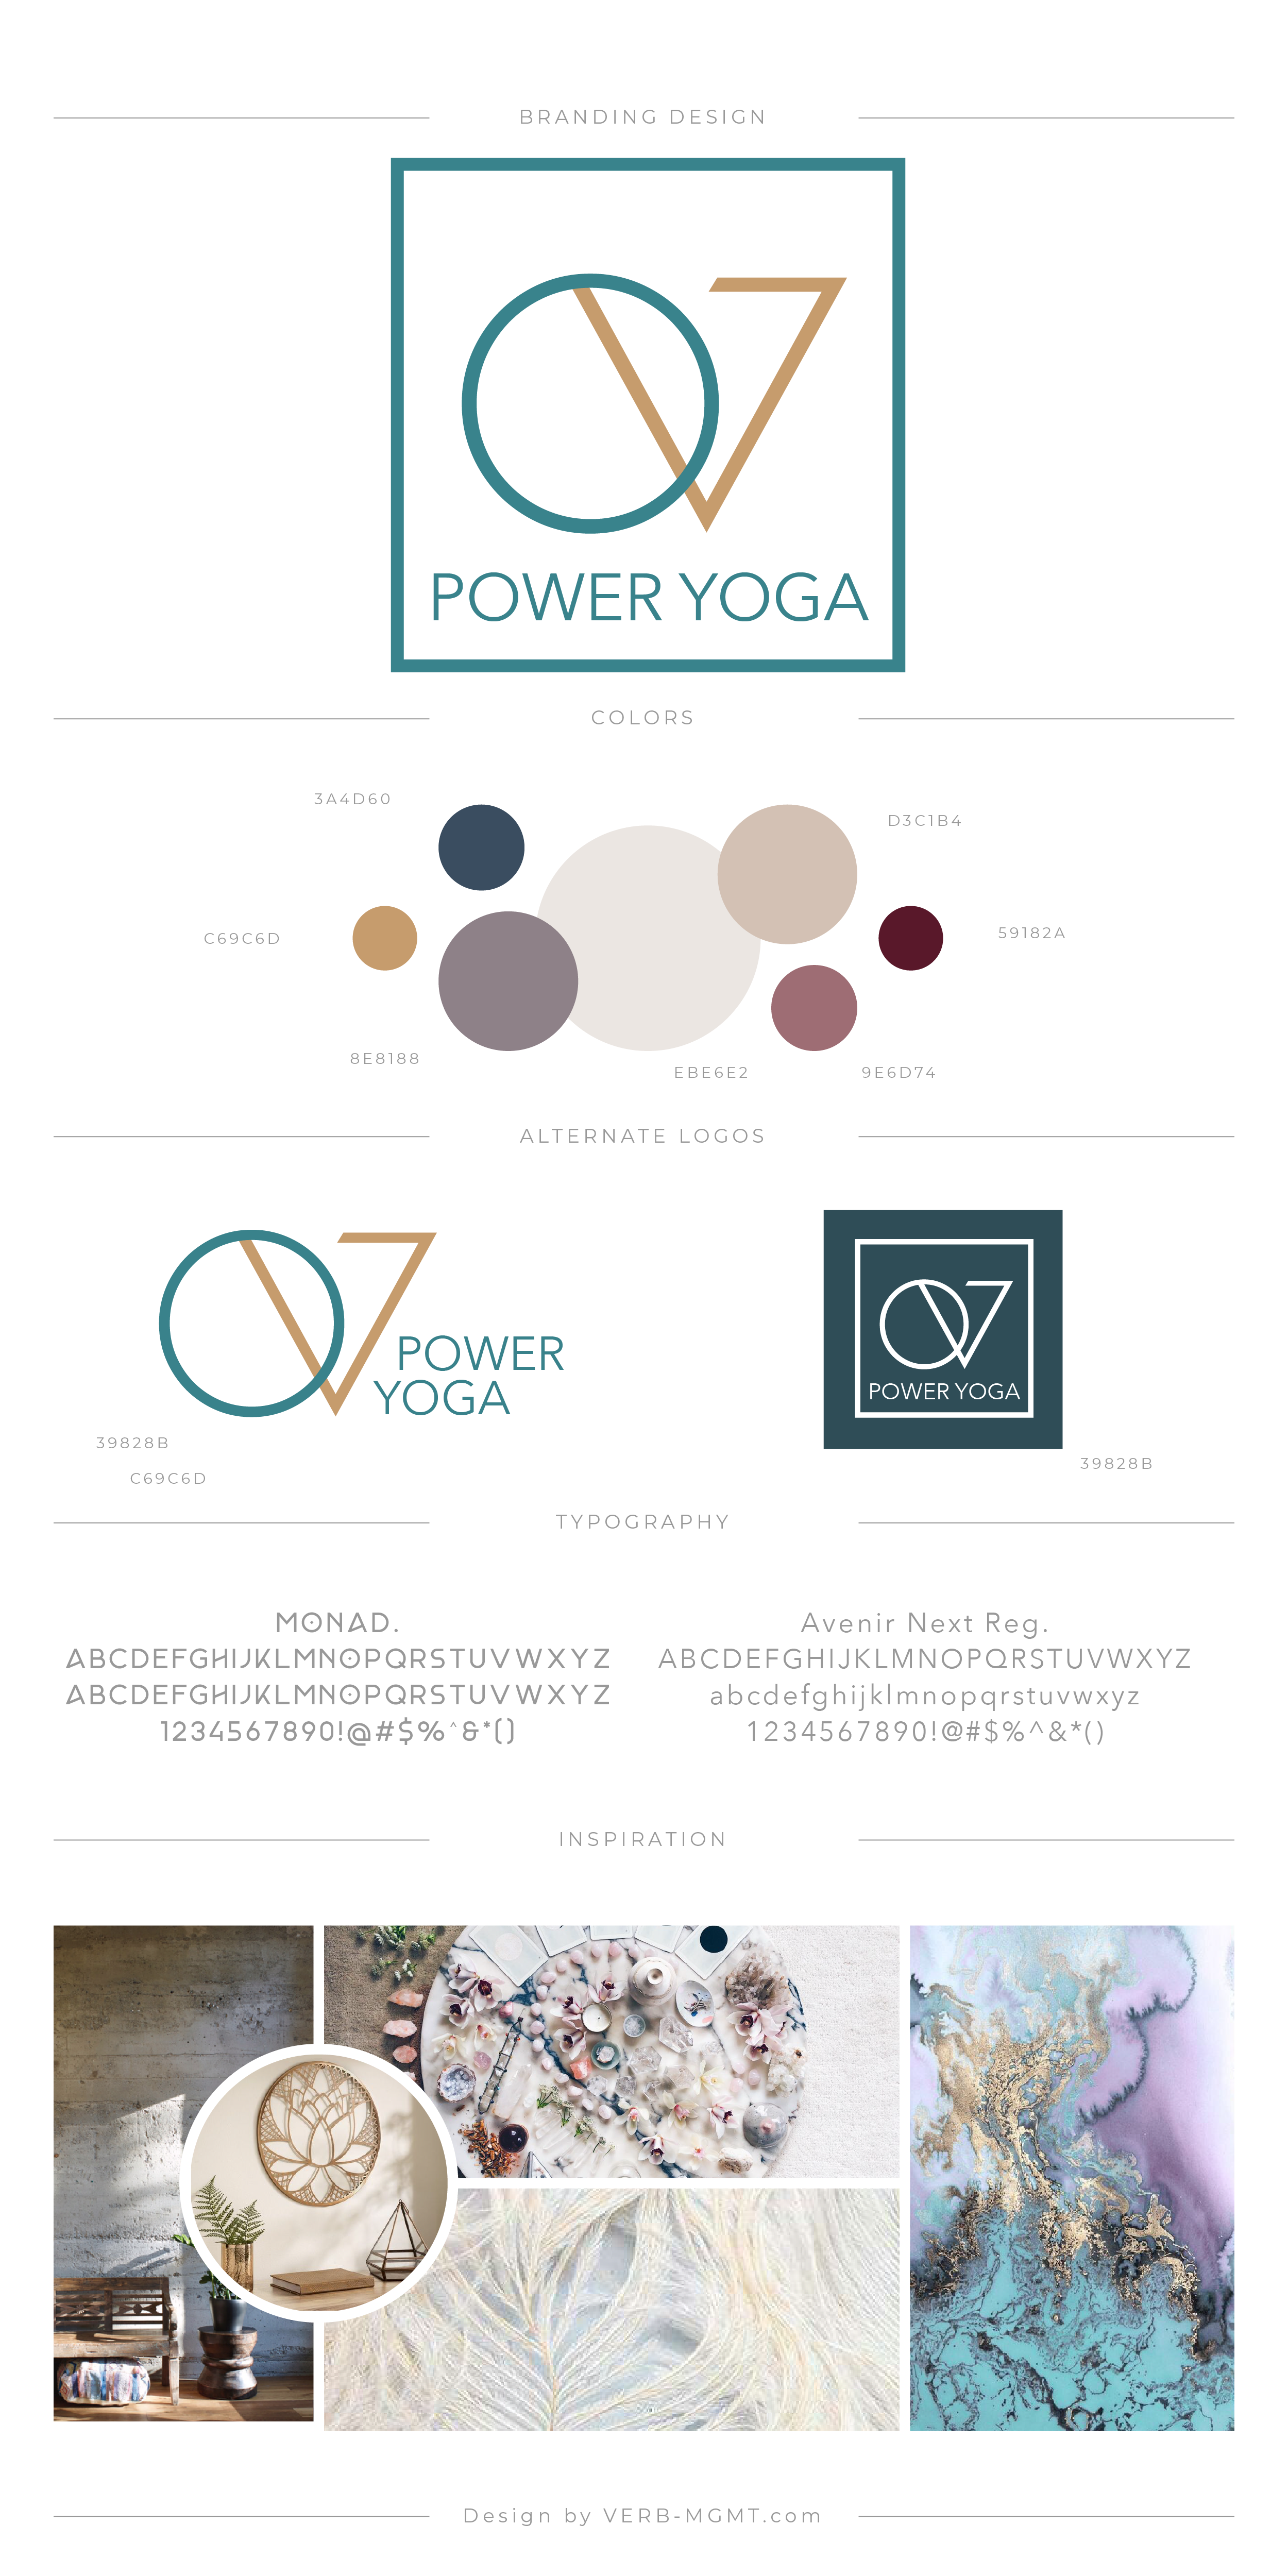 mood-board-brand-branding-yoga-lifestyle-wellness-health-fitness-design-verb-mgmt-management